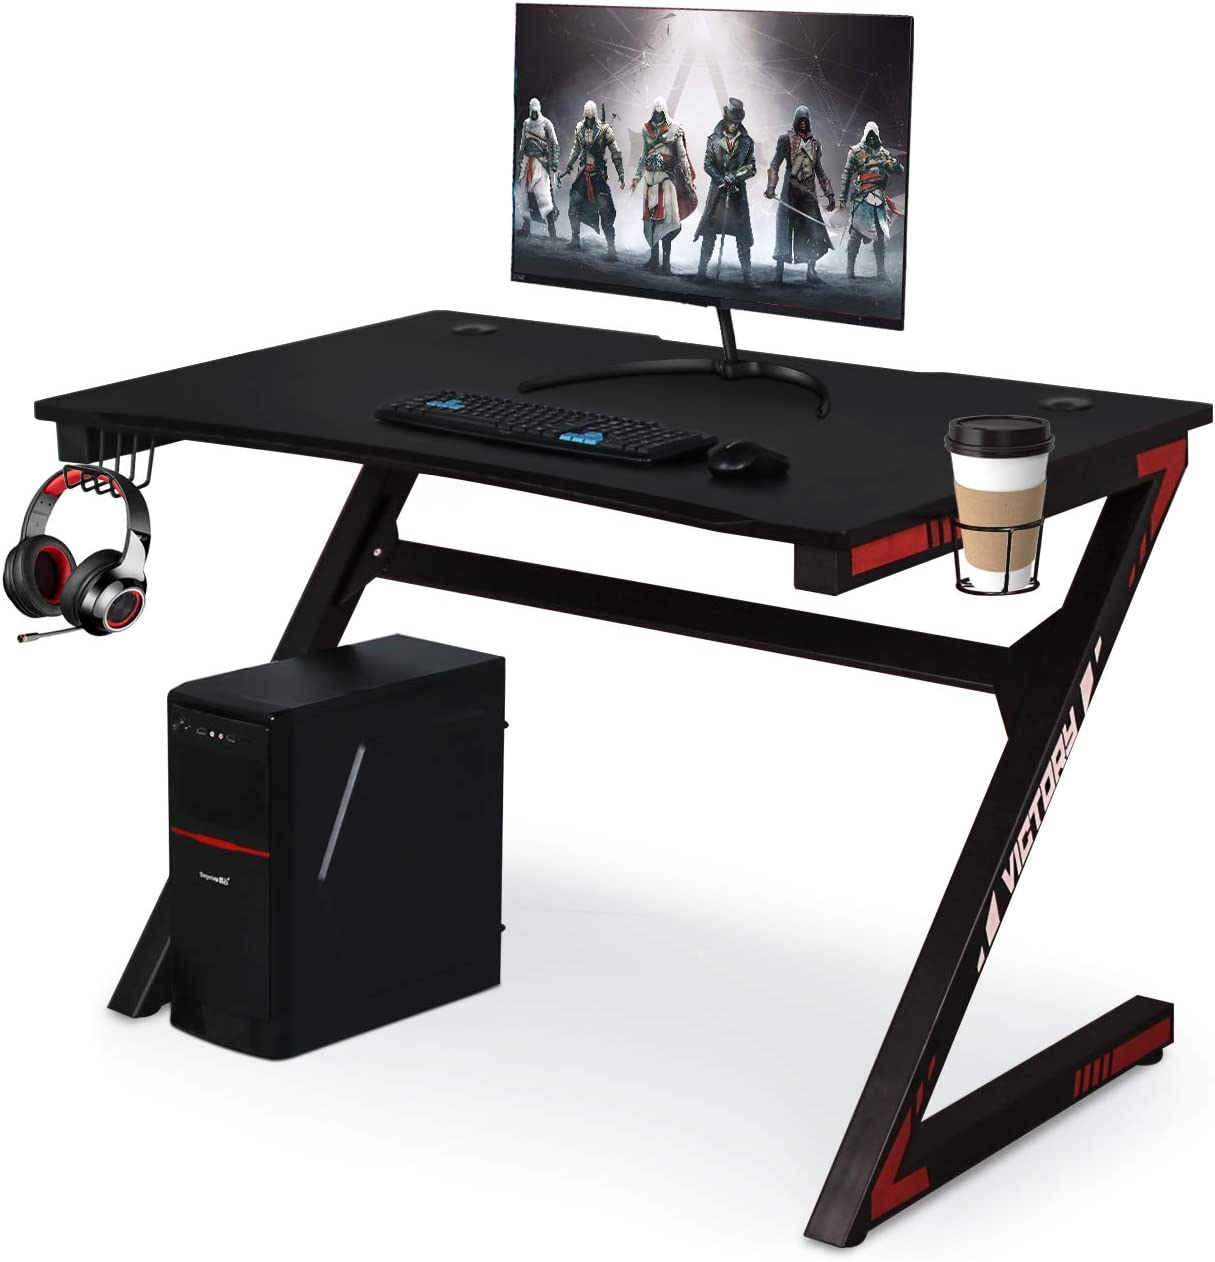 Computer Desk Gaming Table Z Shaped Gamer Workstaton with Large Ergonomic Surface and Heavy Duty Construction for Home or Office, Gaming PC Desk